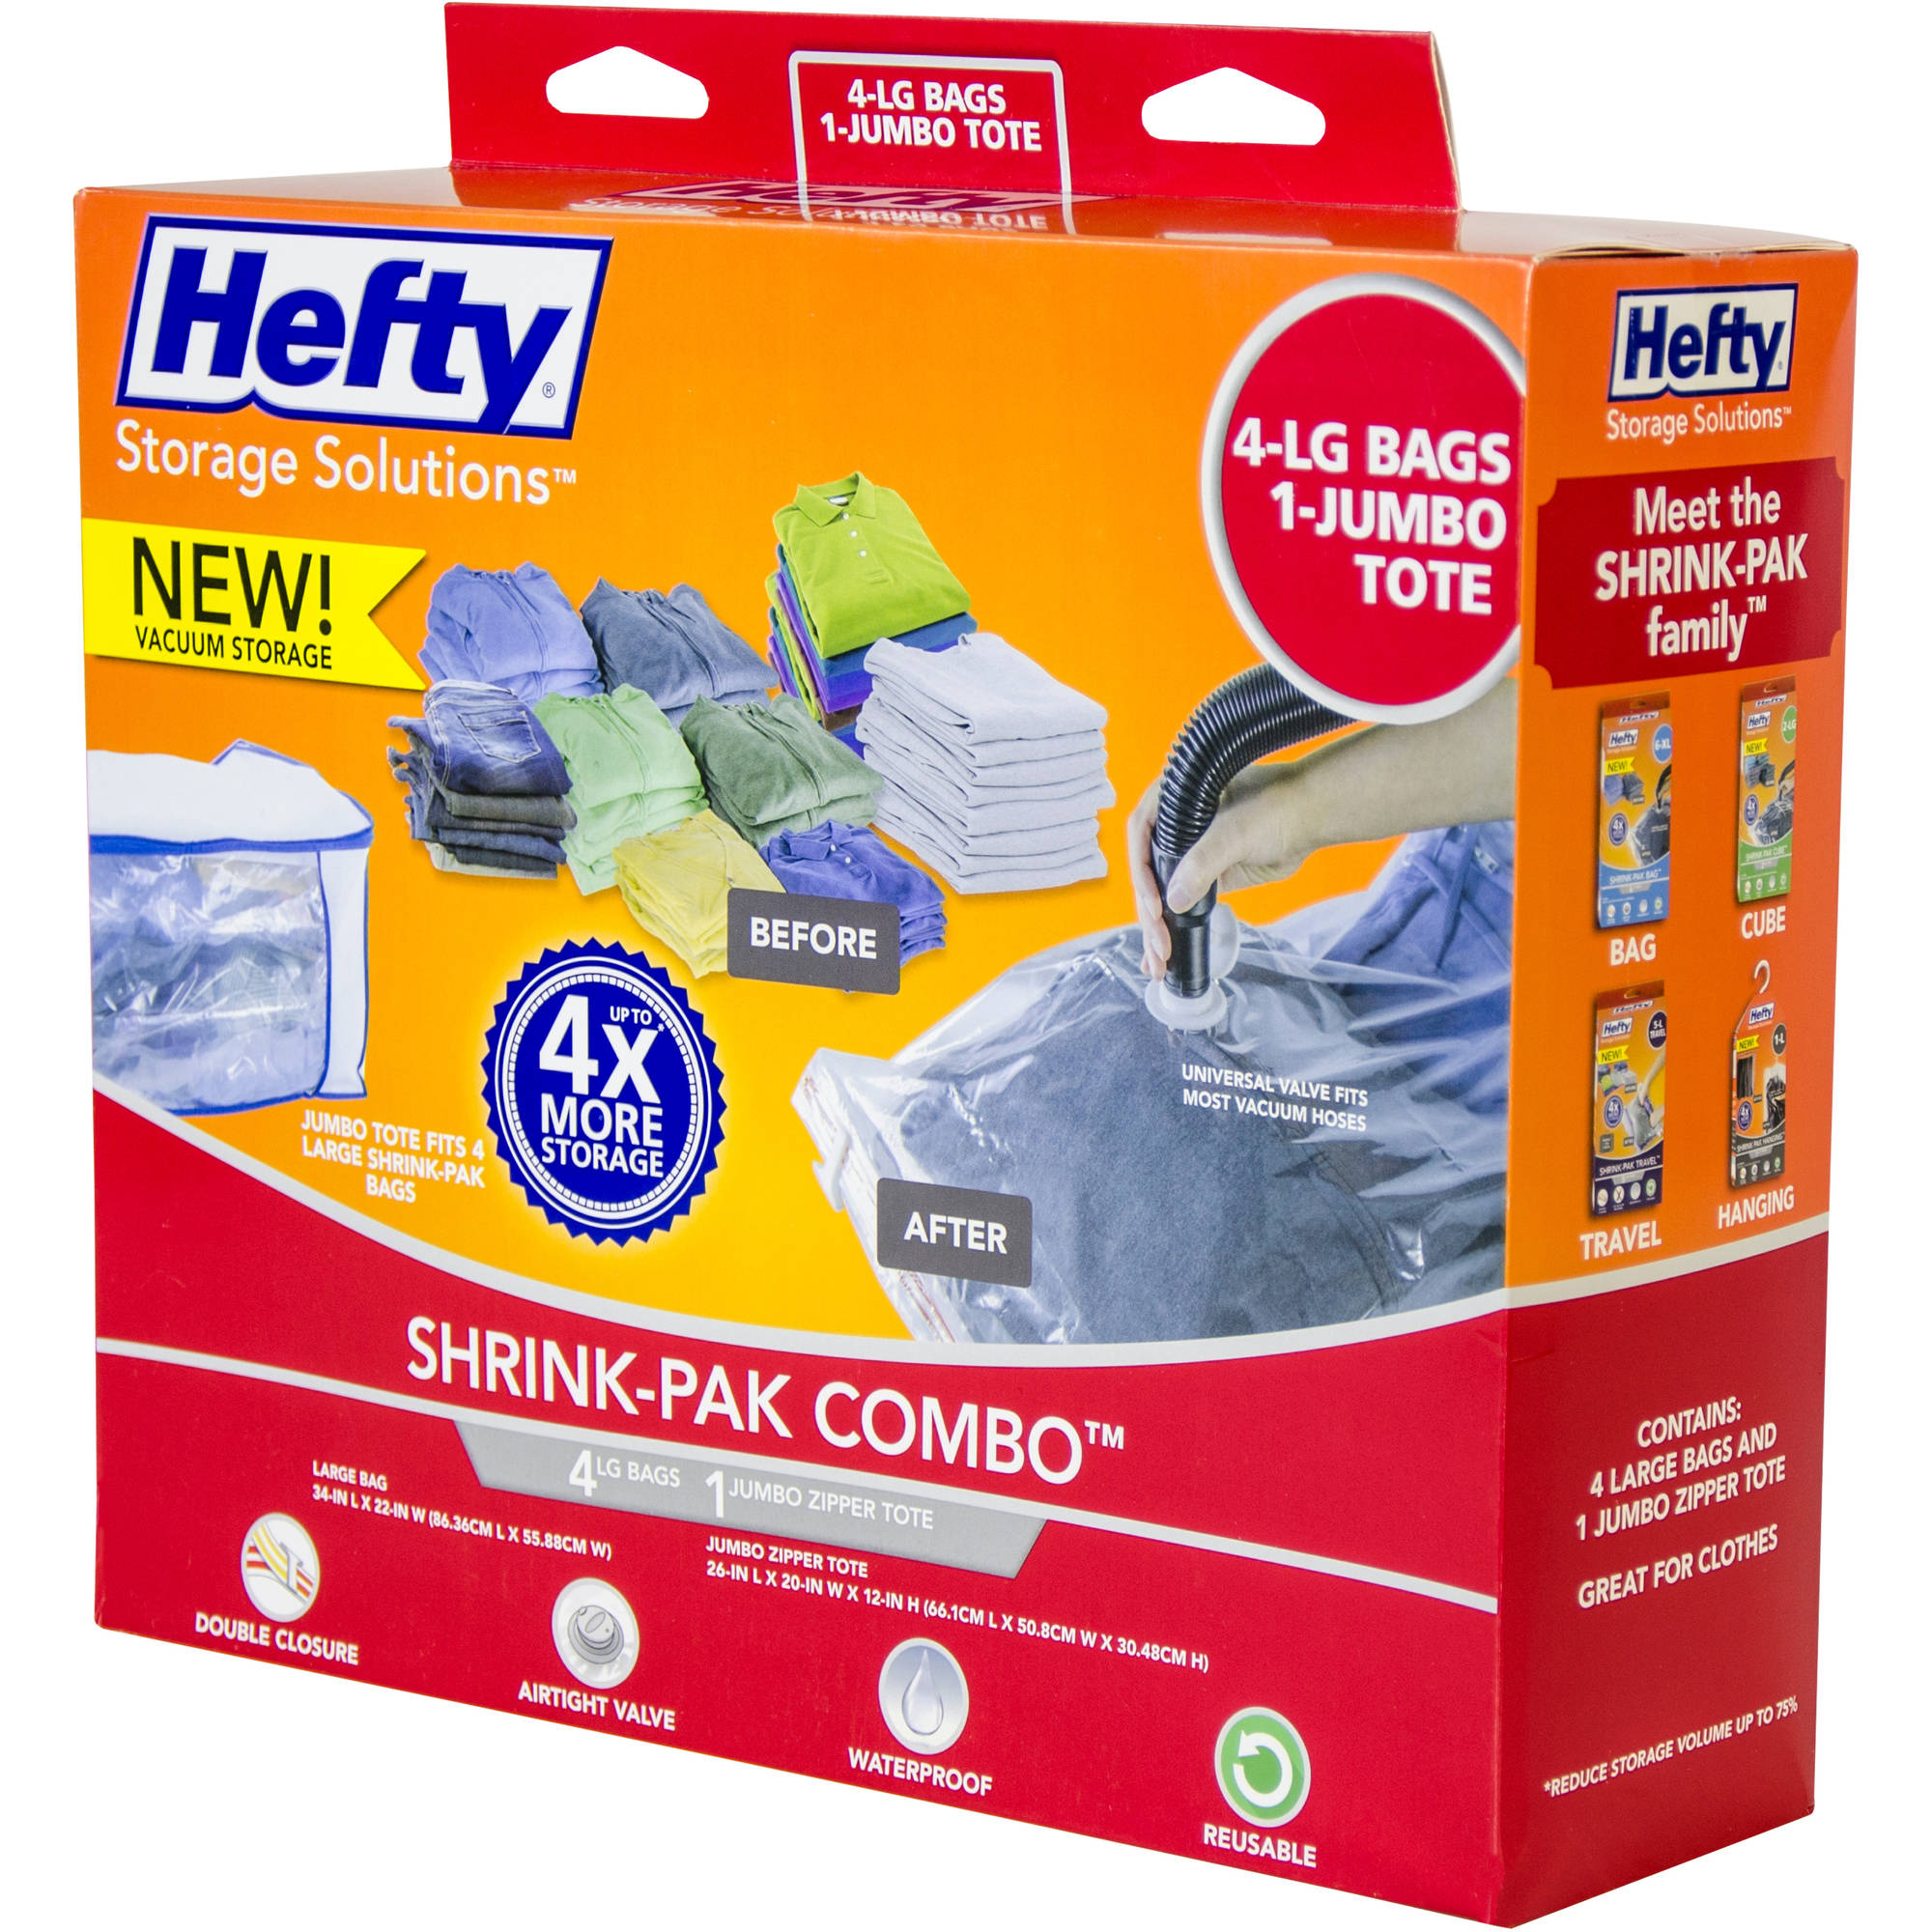 Hefty Shrink-Pak Vacuum Seal Bags, 4 Large Bags and 1 Jumbo Zipper Tote